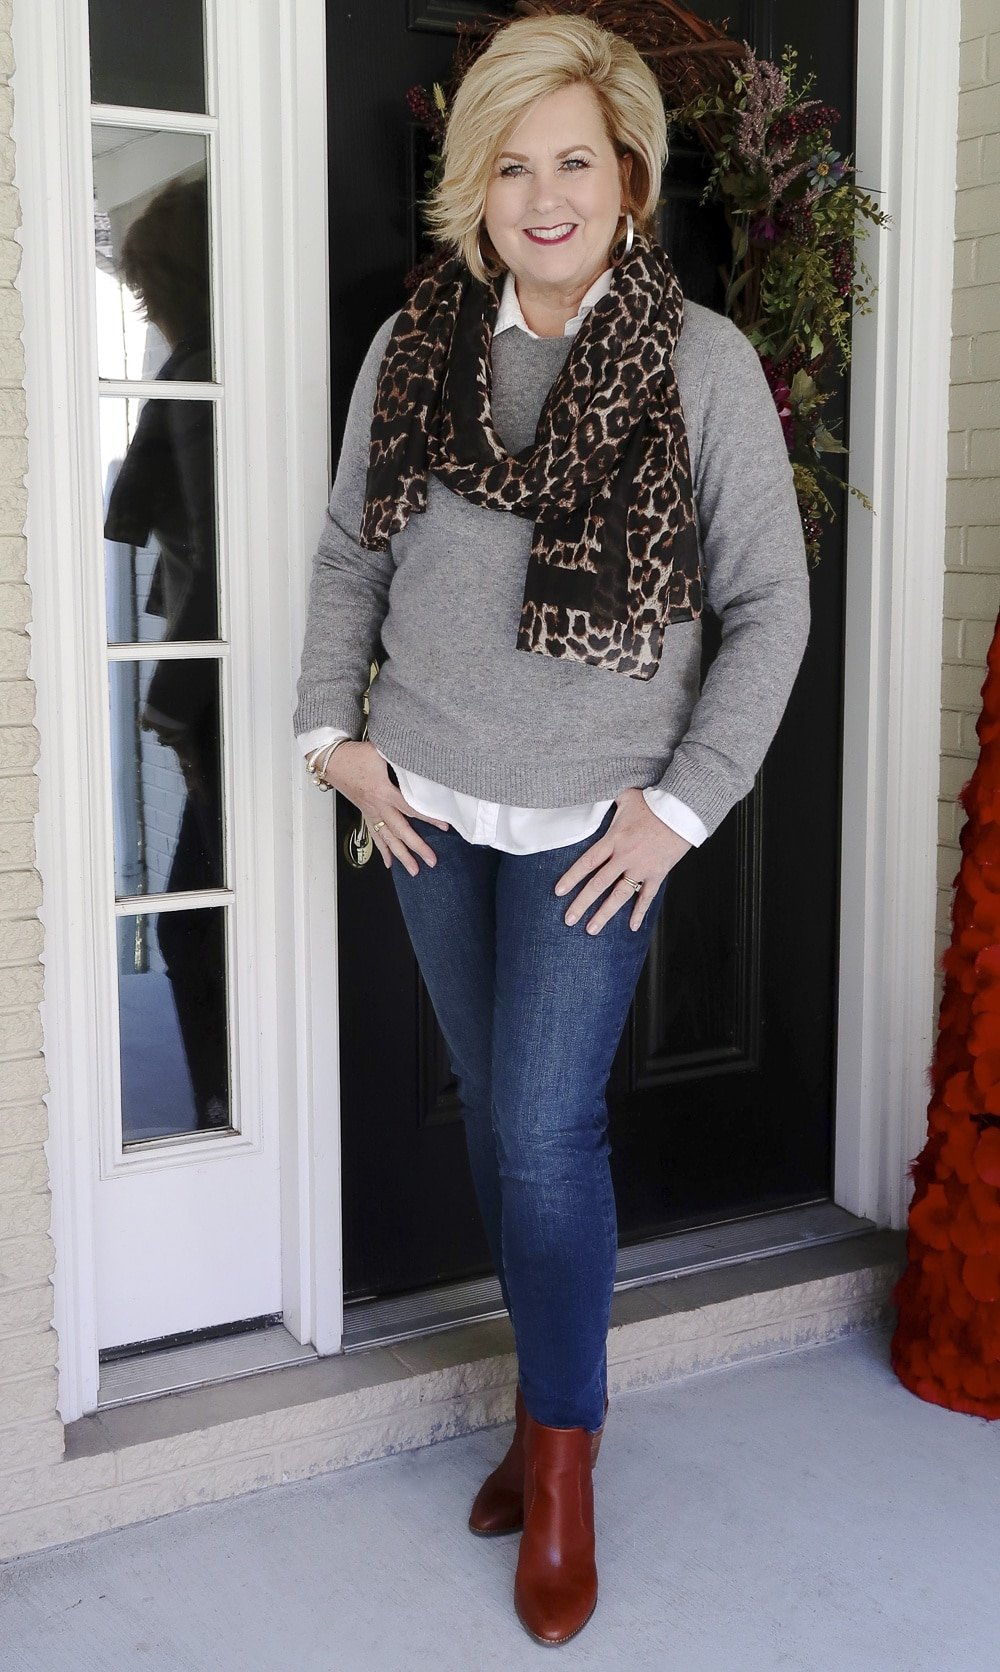 Fashion Blogger 50 Is Not Old in a gray cashmere sweater and a leopard print scarf